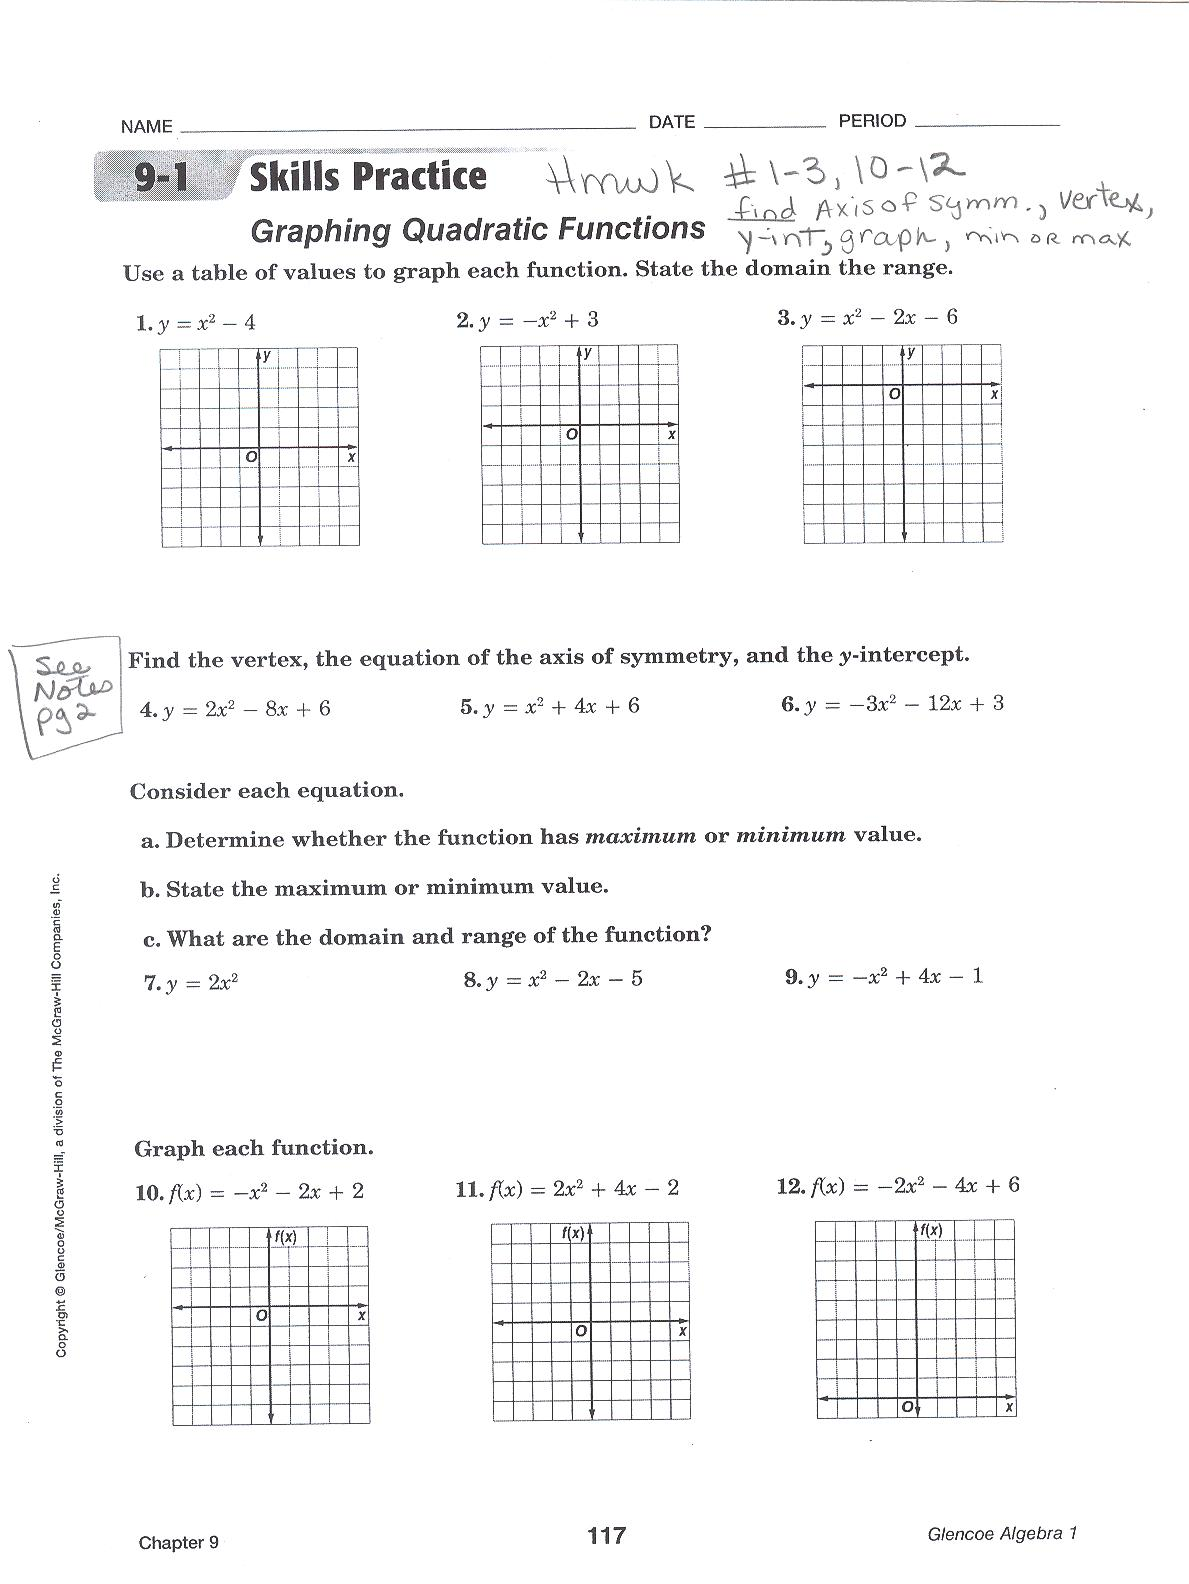 35 Graphing Quadratic Functions Practice Worksheet